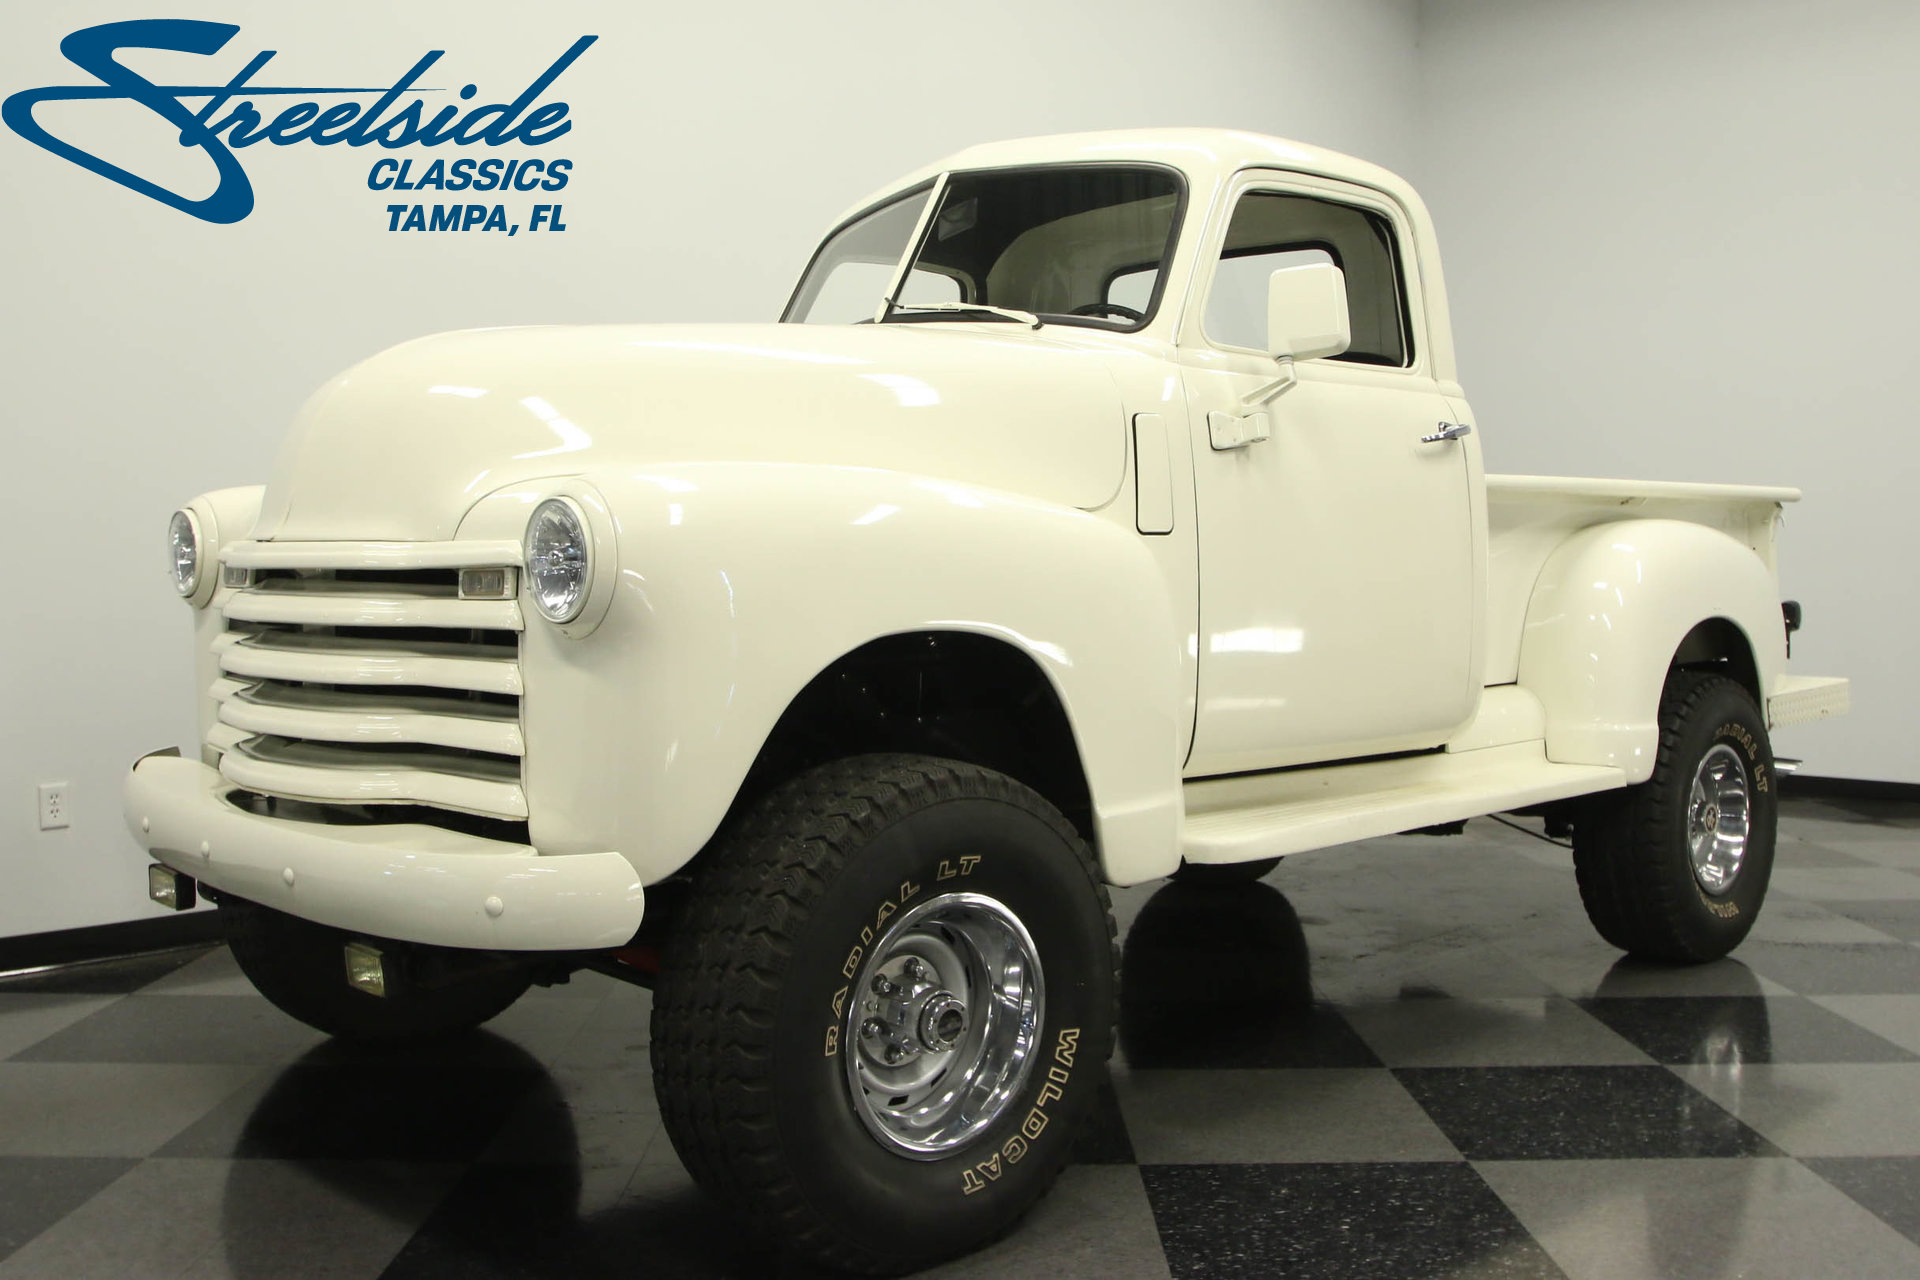 1950 Chevrolet 3100 Streetside Classics The Nations Trusted 1949 Chevy Truck Paint Colors Play Video